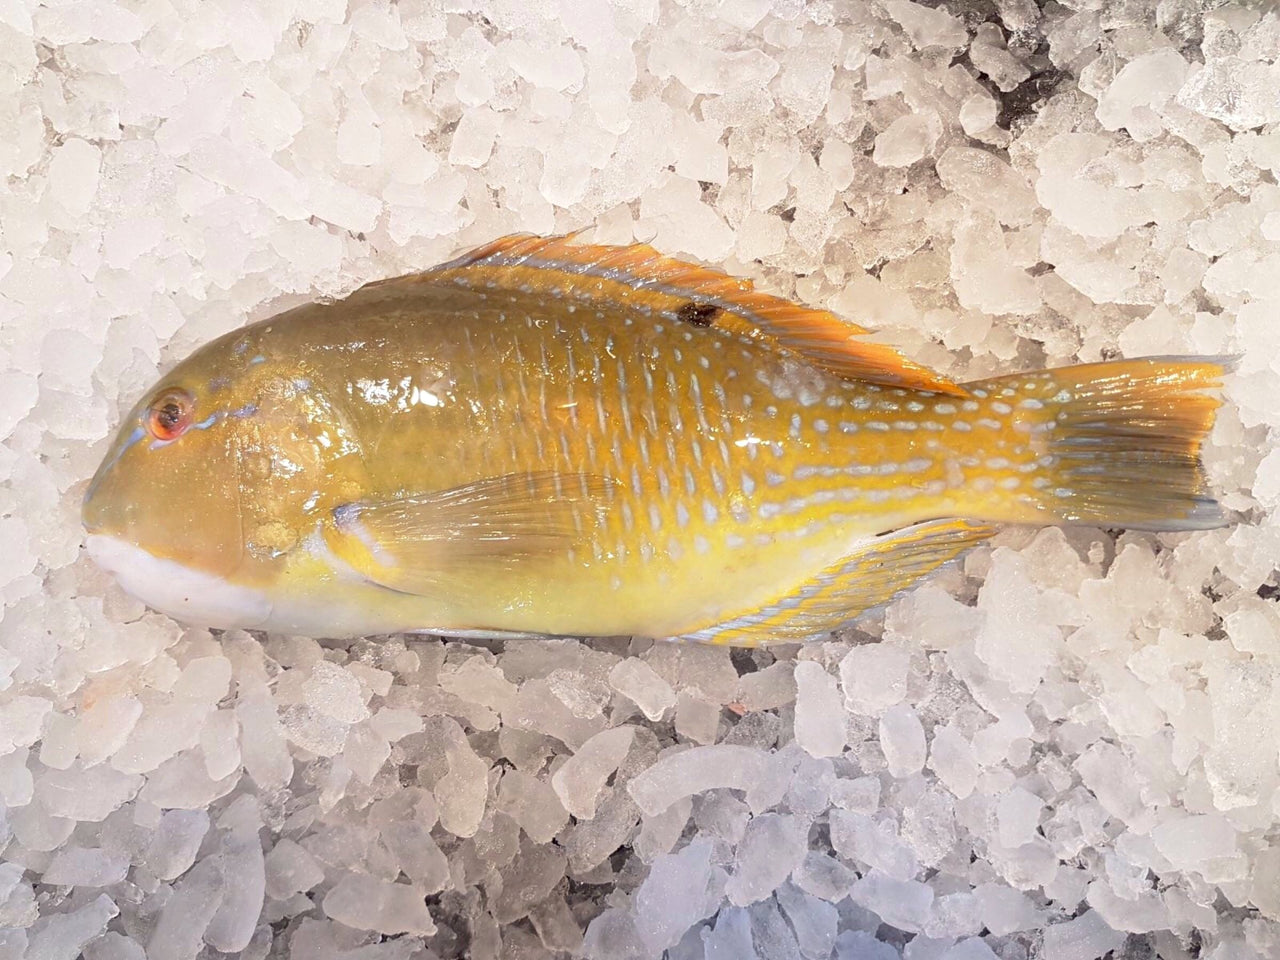 wild caught parrot fish green wrasse 青衣 鹦哥鱼 fresh fish third generation fishmonger singapore dishthefish fresh seafood supplier singapore